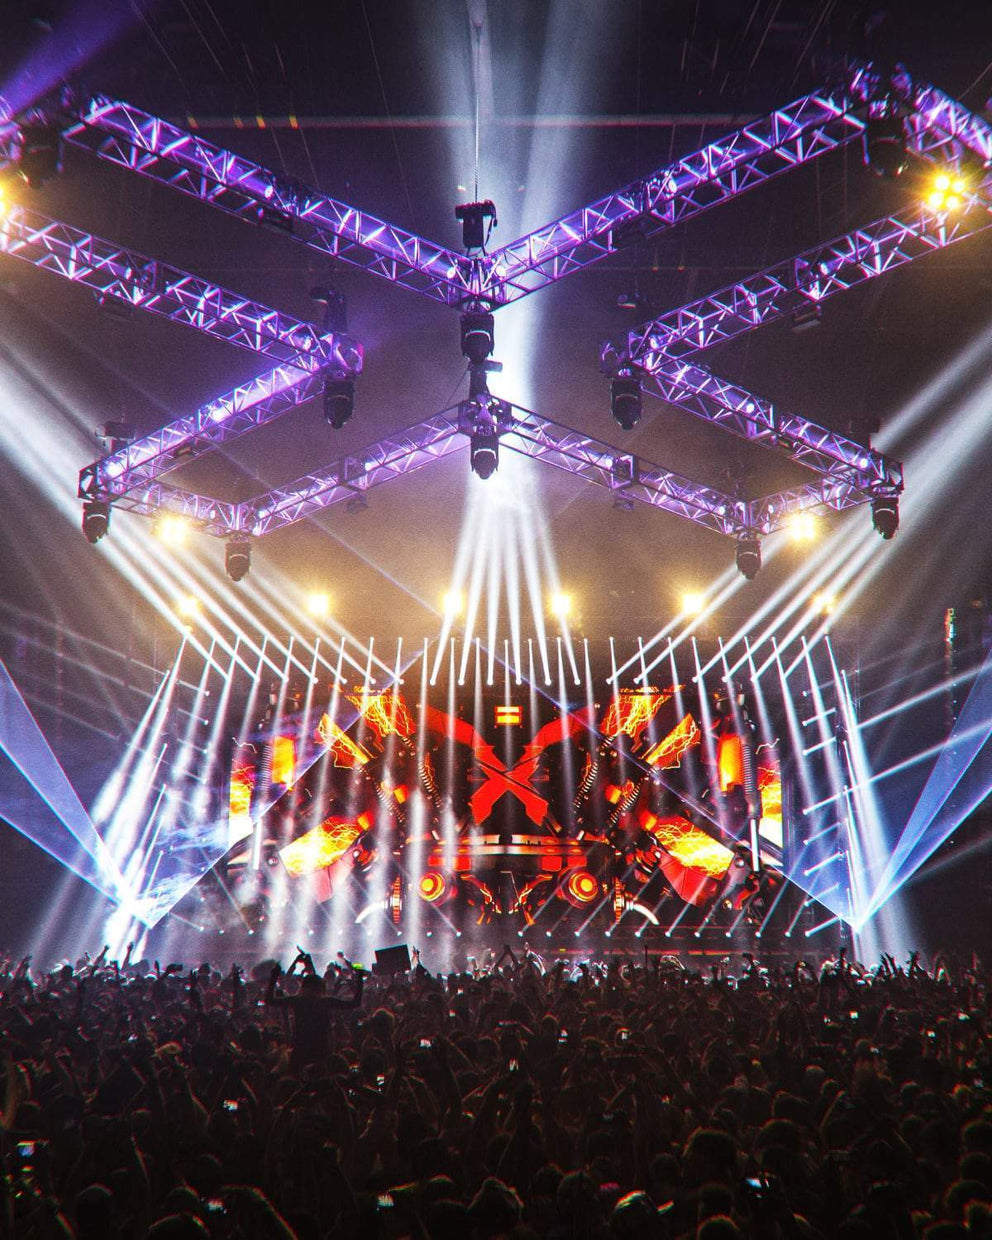 Excision 2018 Tour Featuring The Paradox - Indianapolis, IN 02/15